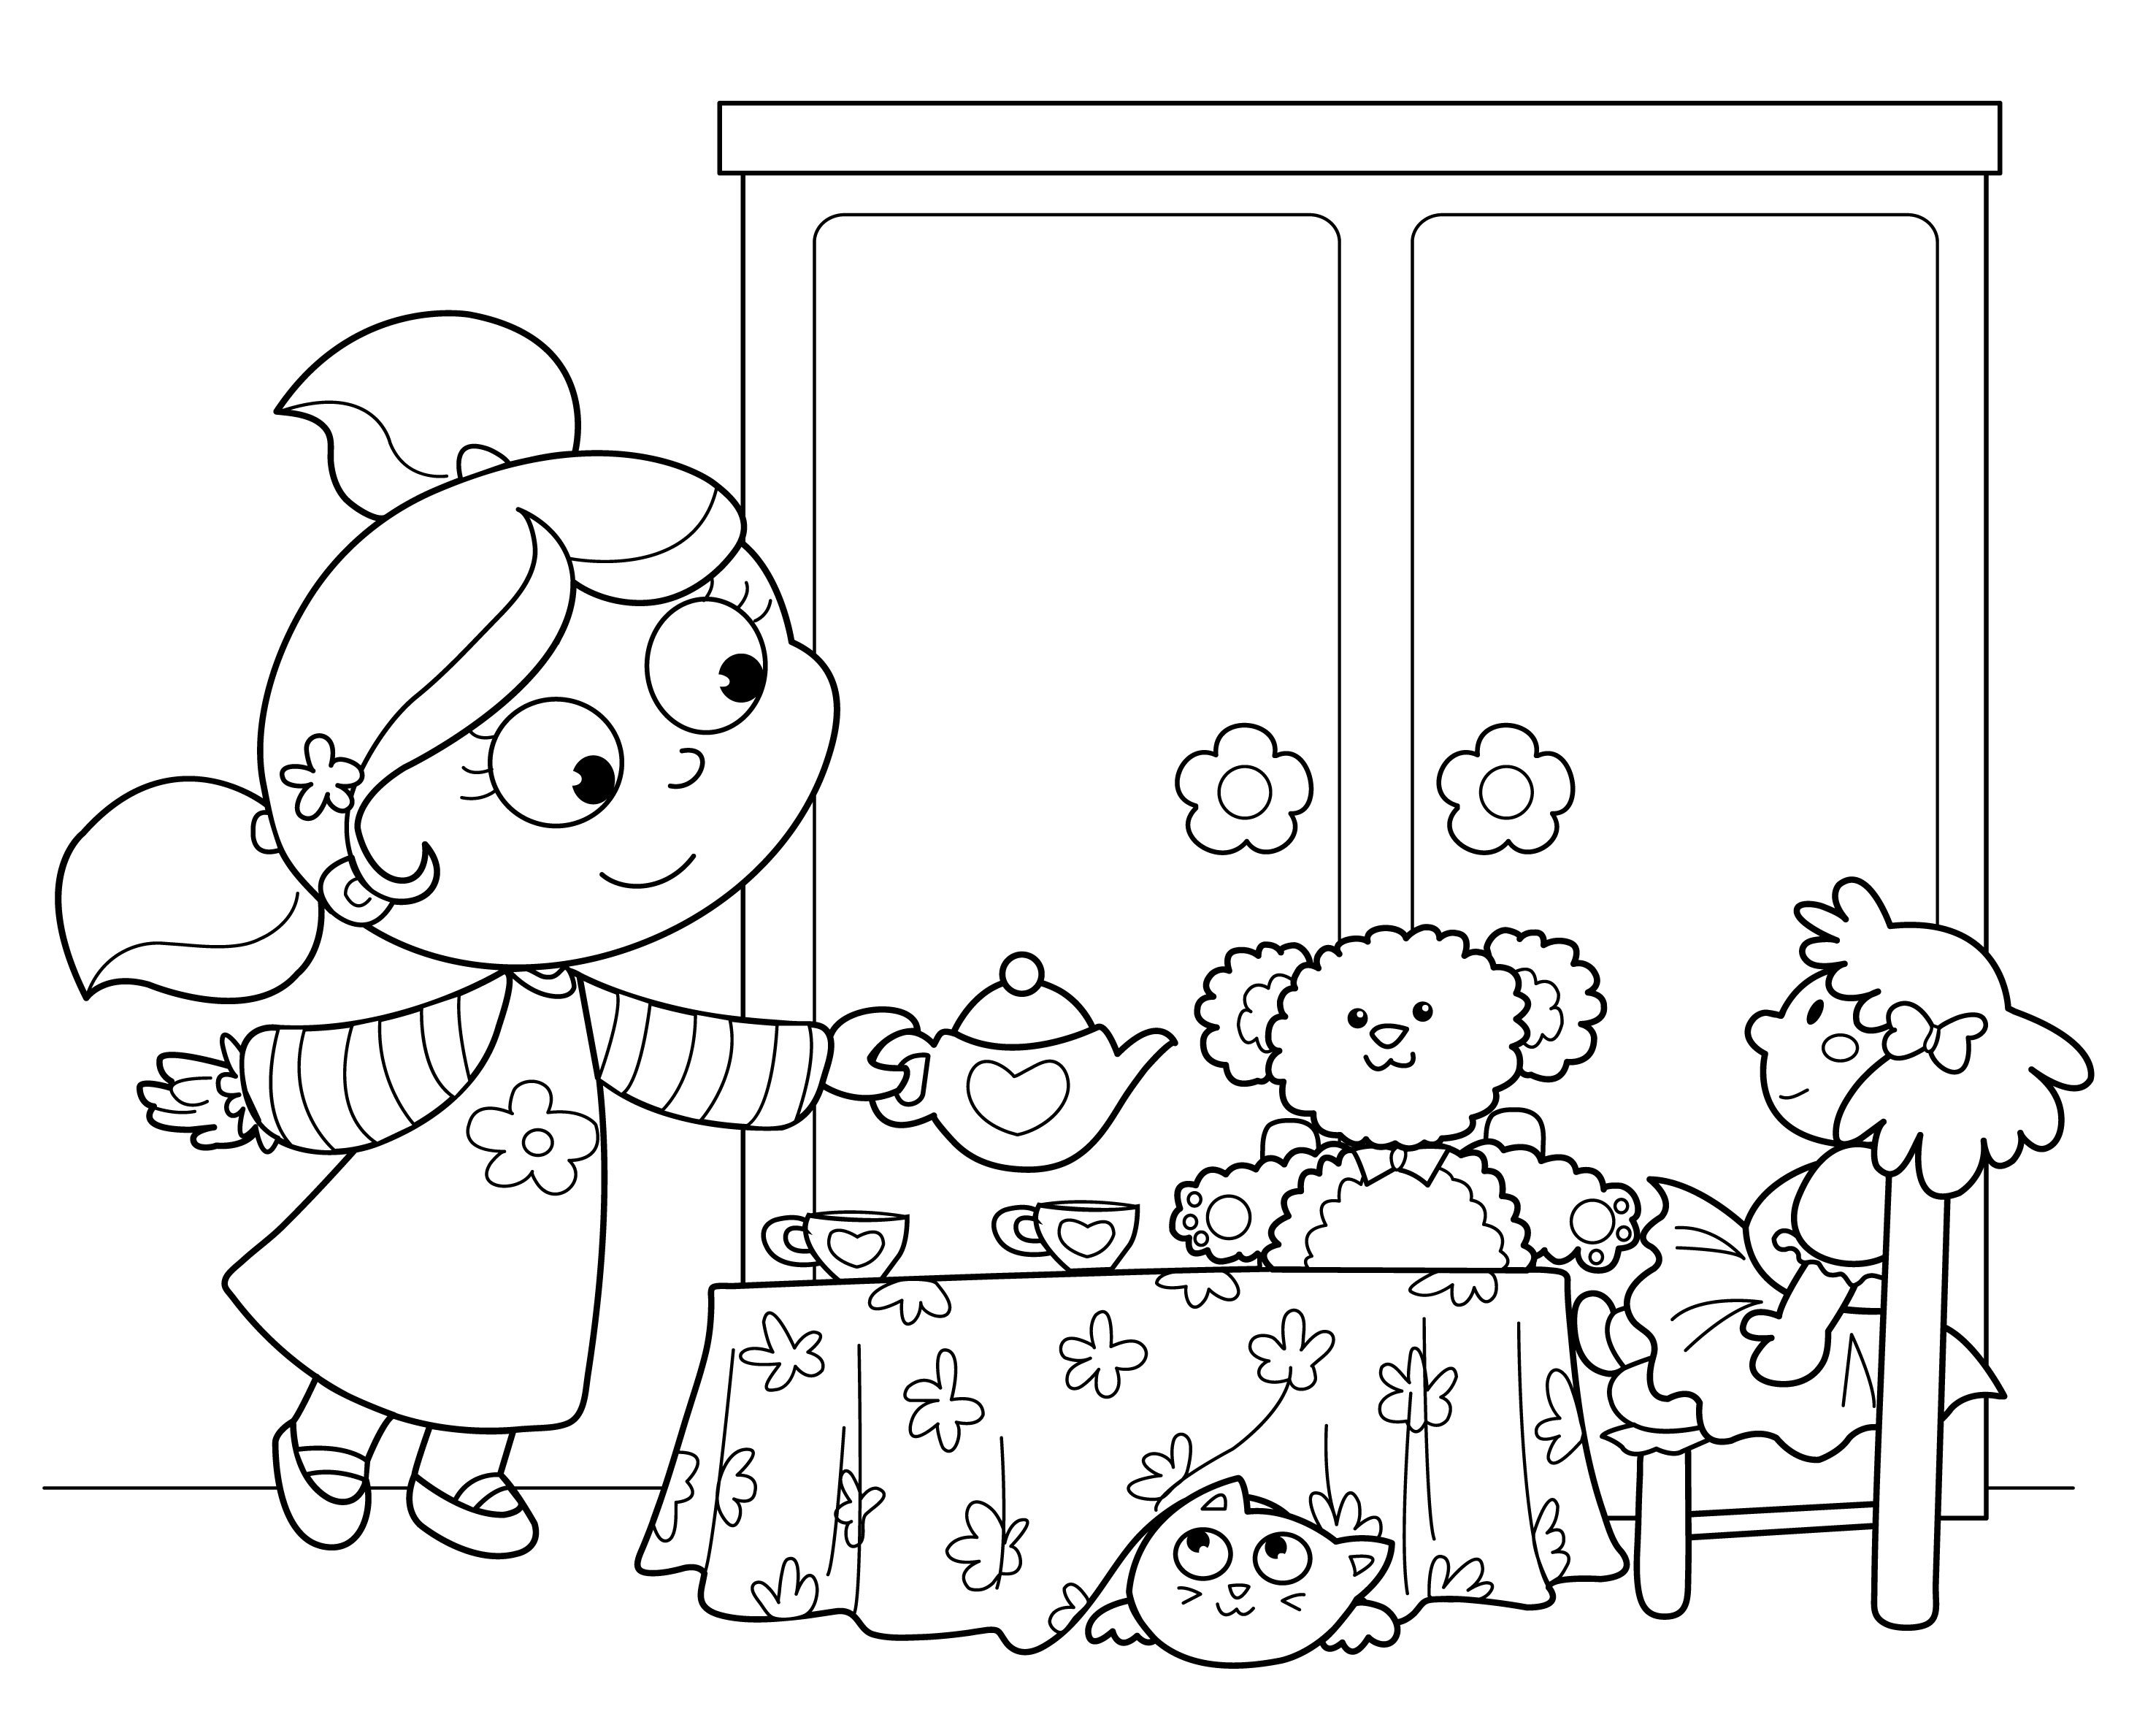 Ruler Coloring Page At Getcolorings